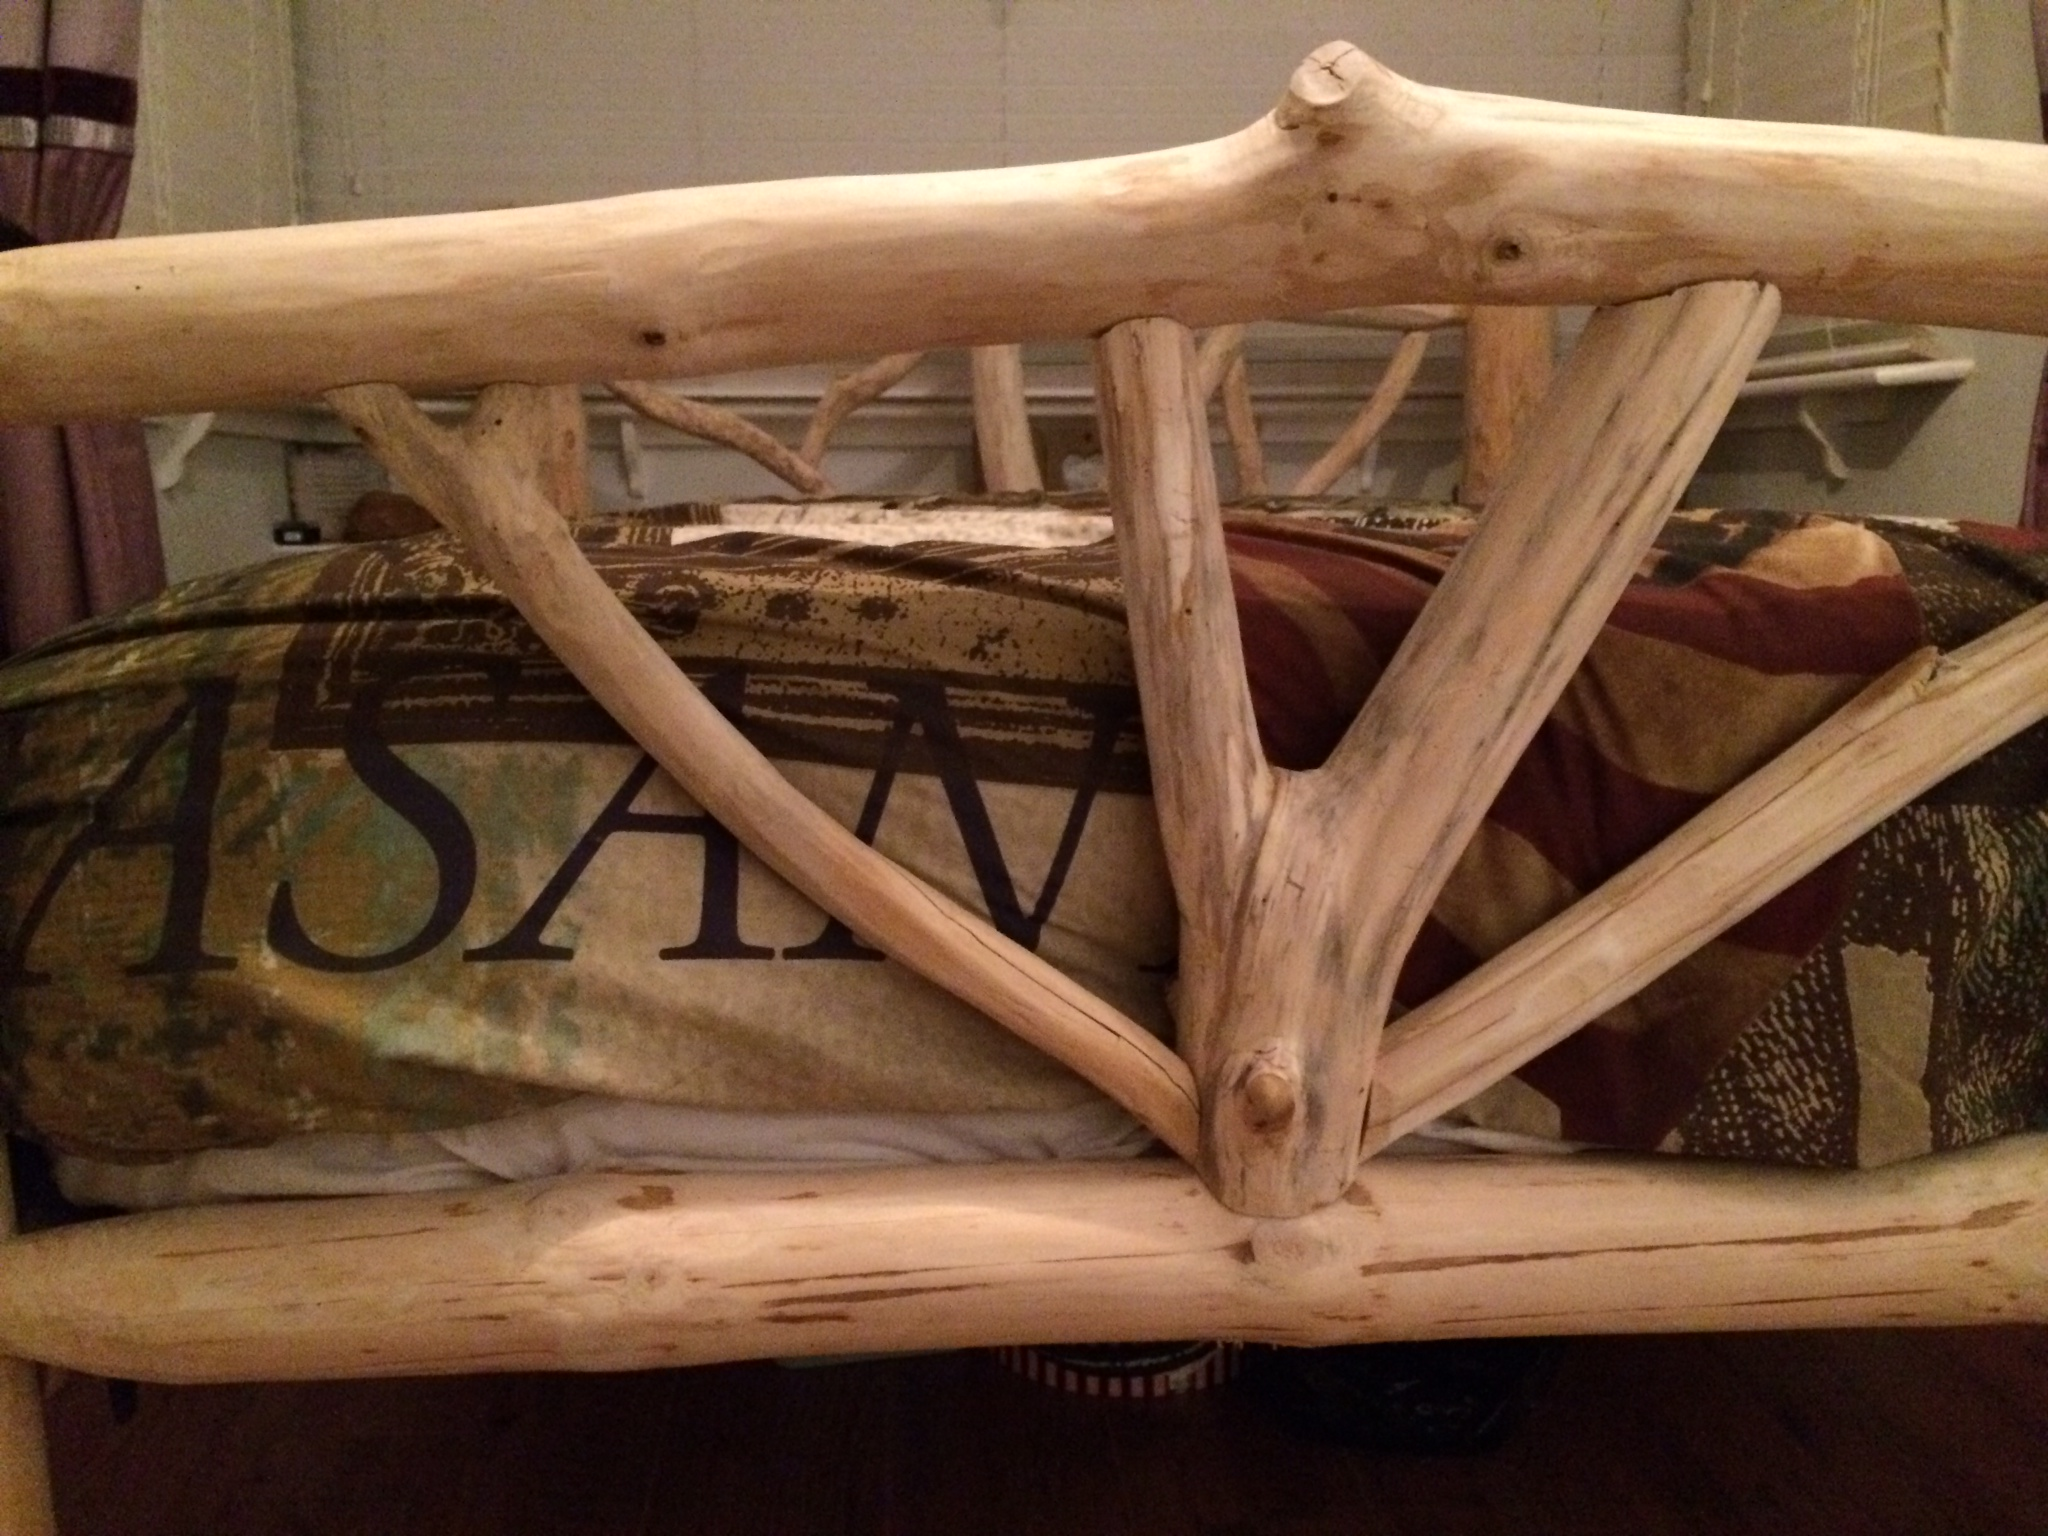 pictures of rustic furniture. Bespoke Rustic Furniture Pictures Of R